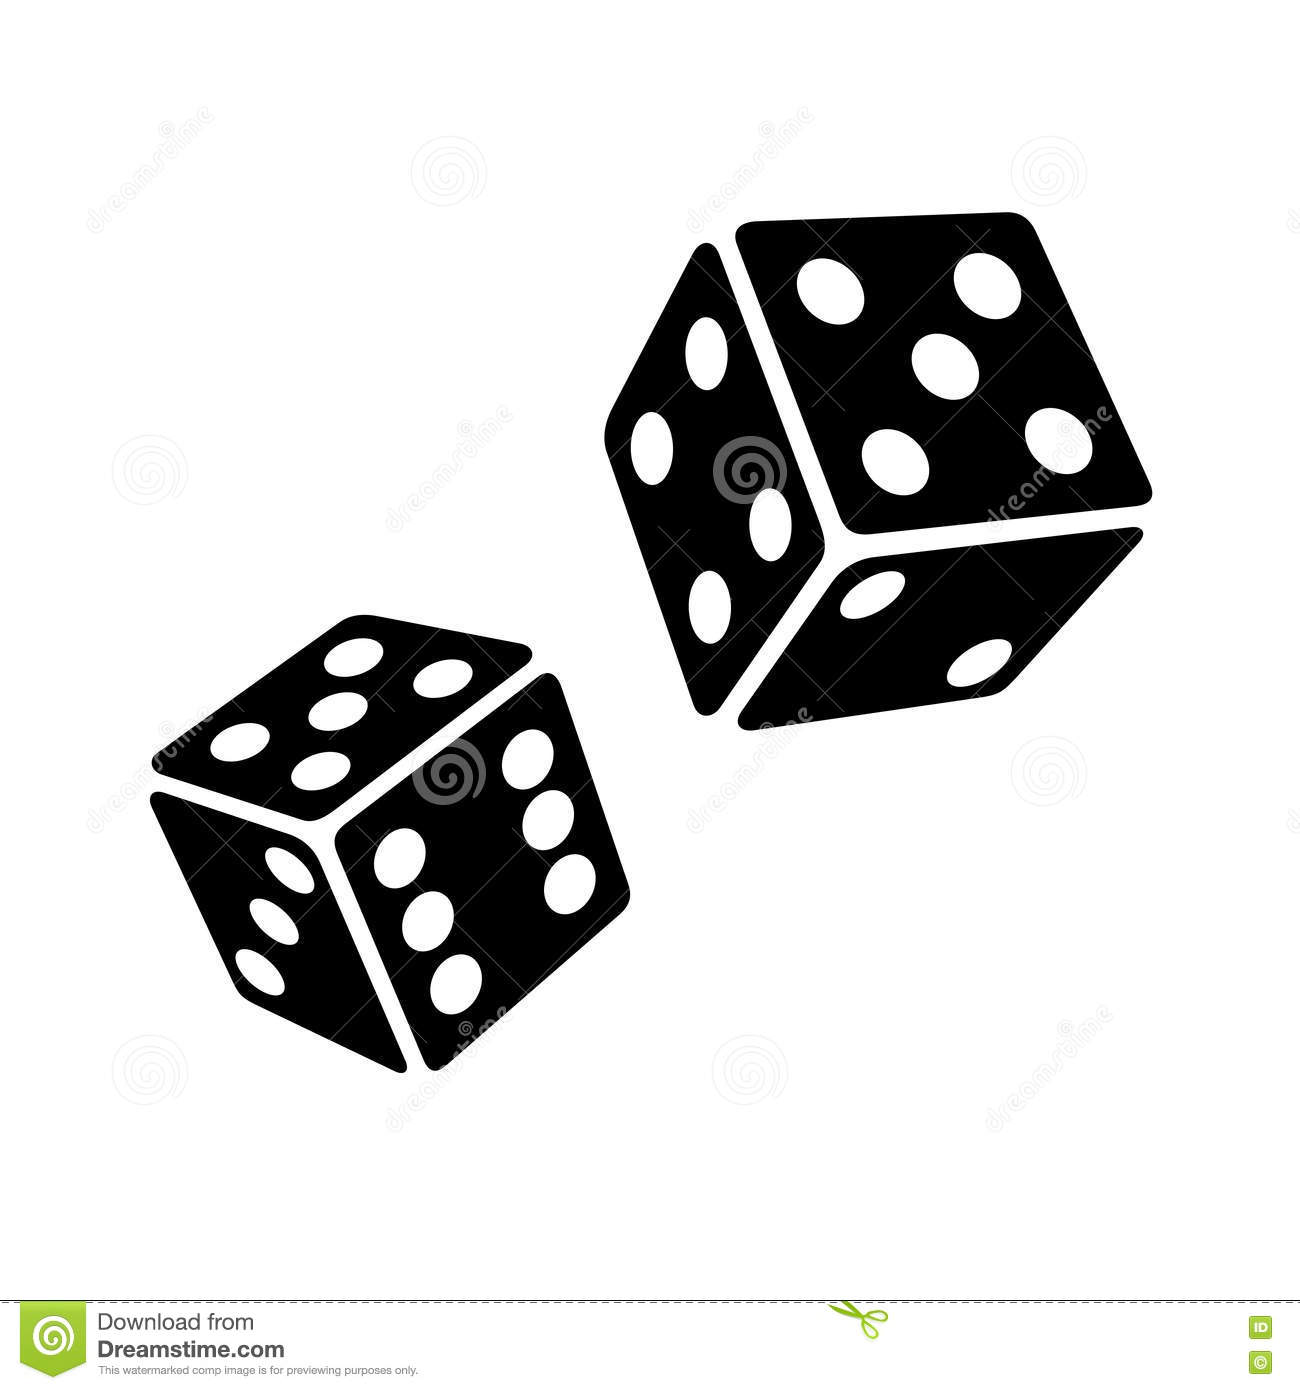 Two Black Dice Cubes On White Background. Vector Stock Vector.